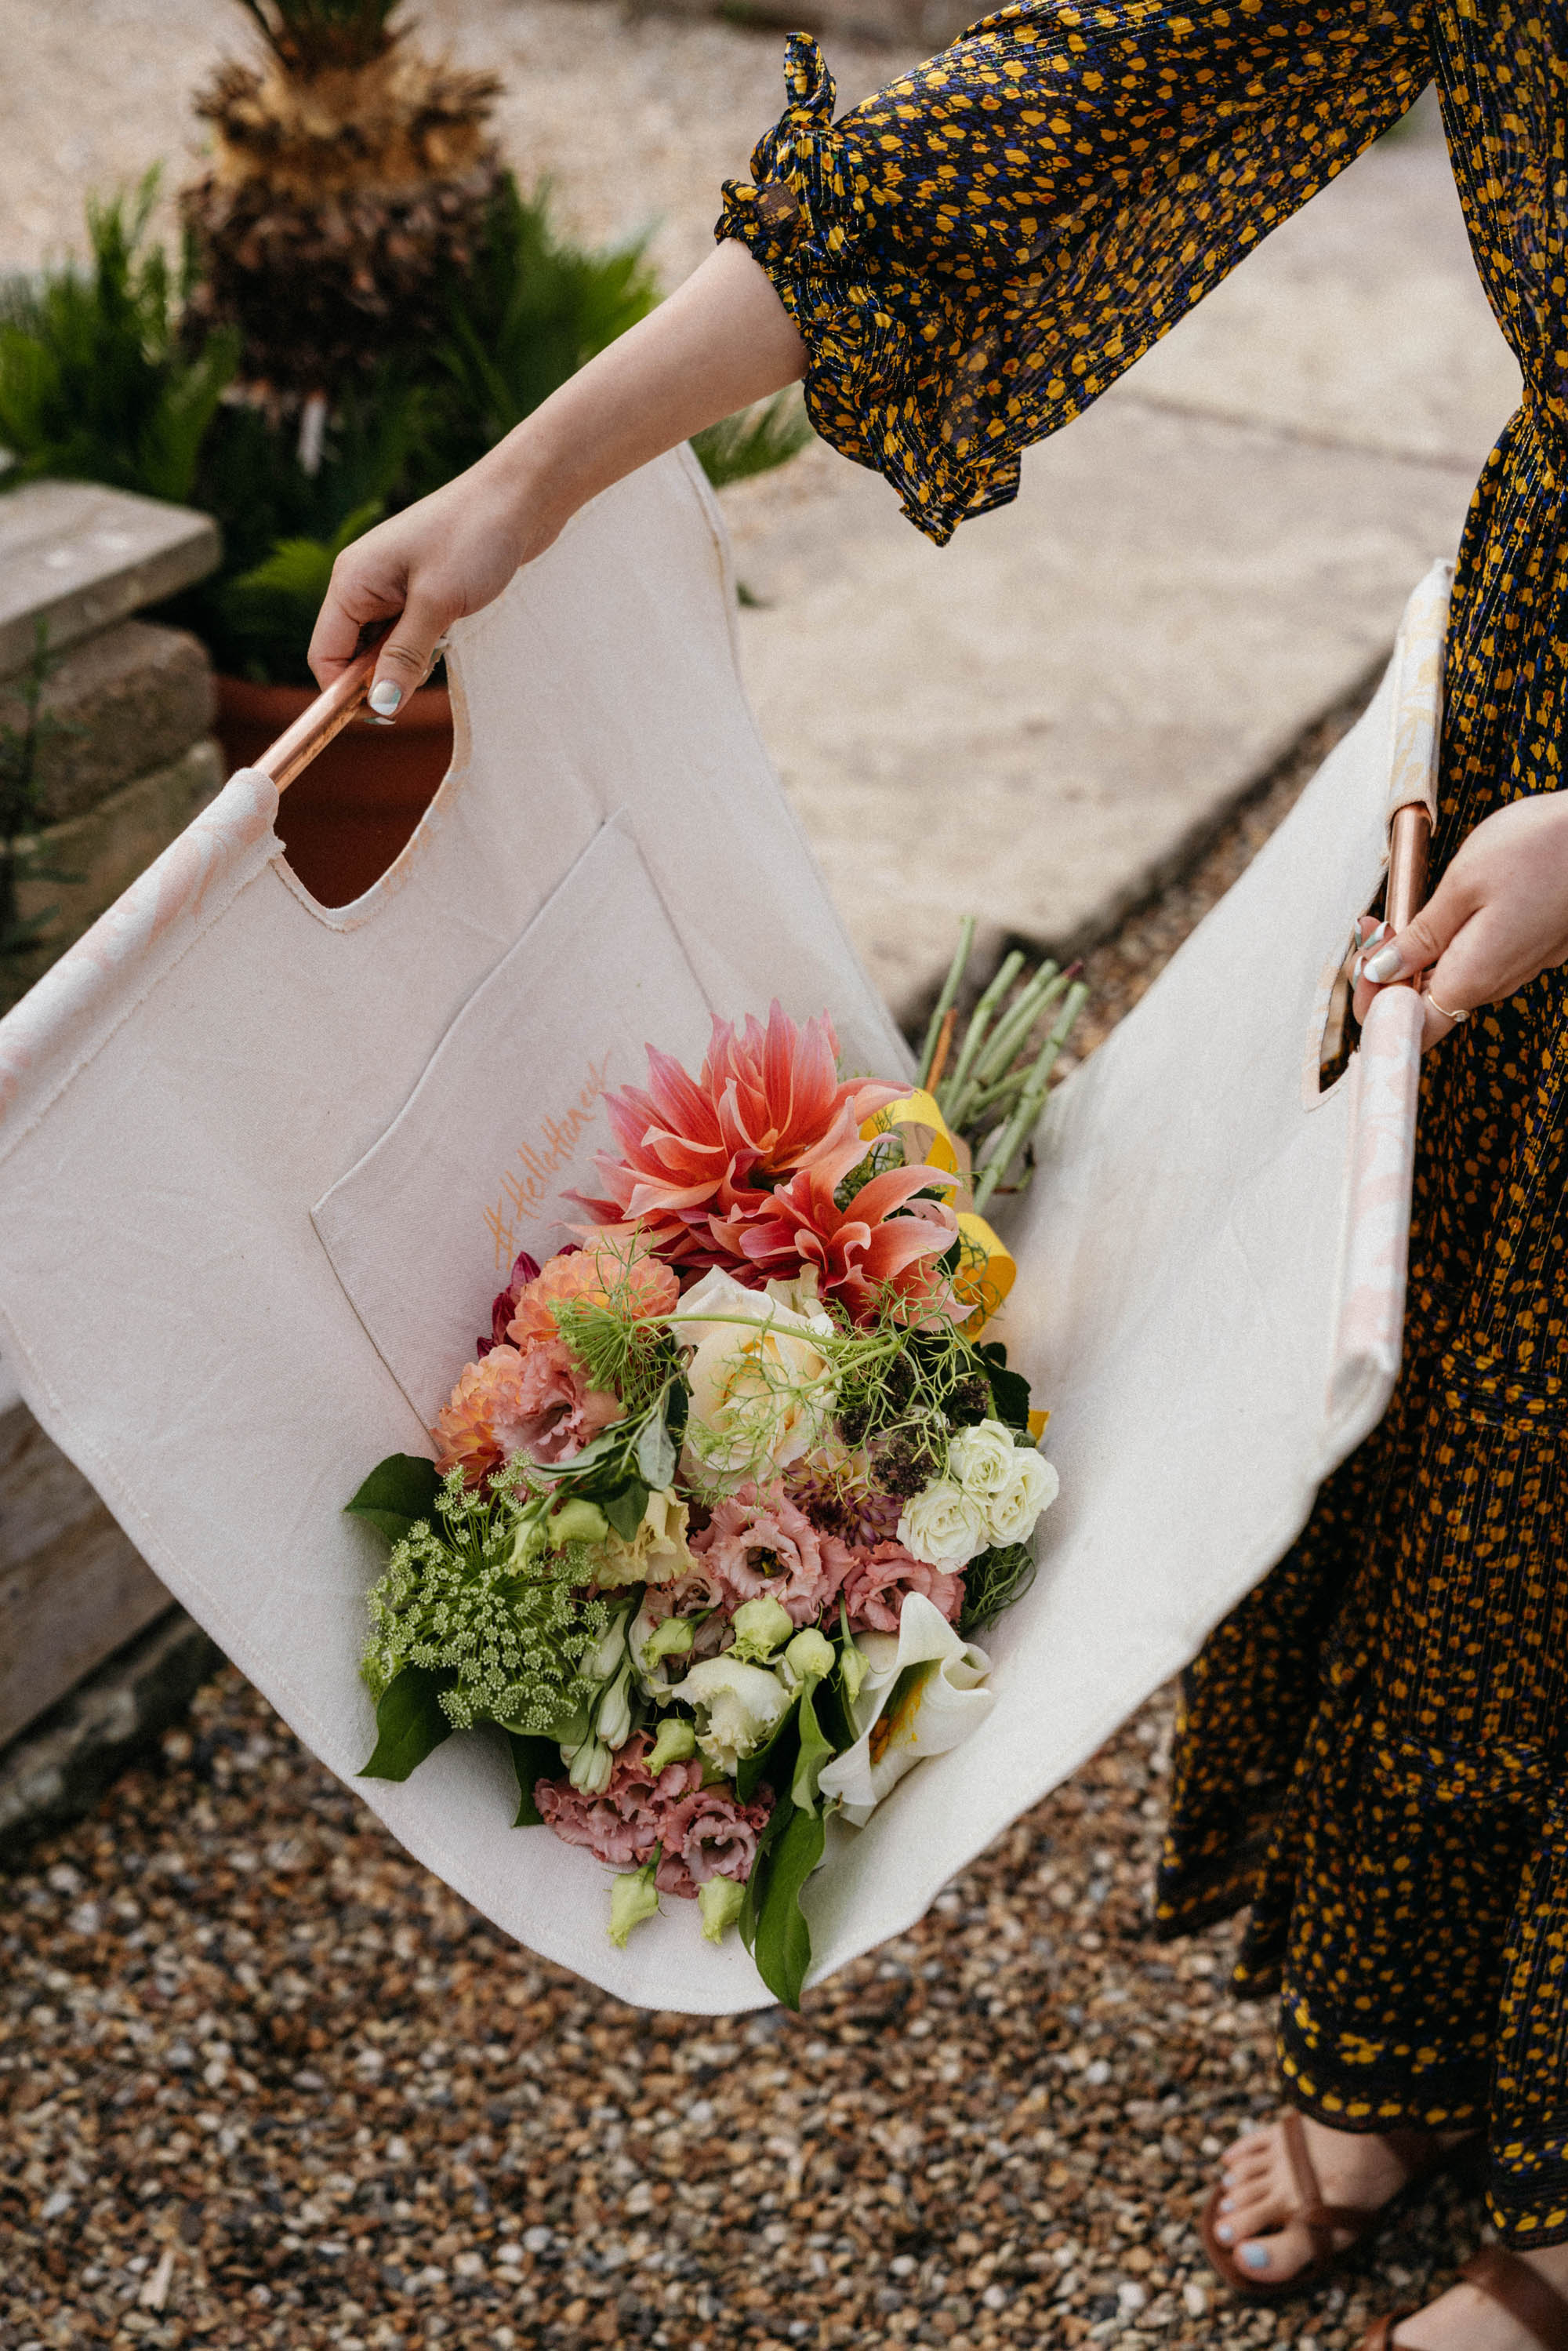 Floral bouquet making with Thomas Flowers